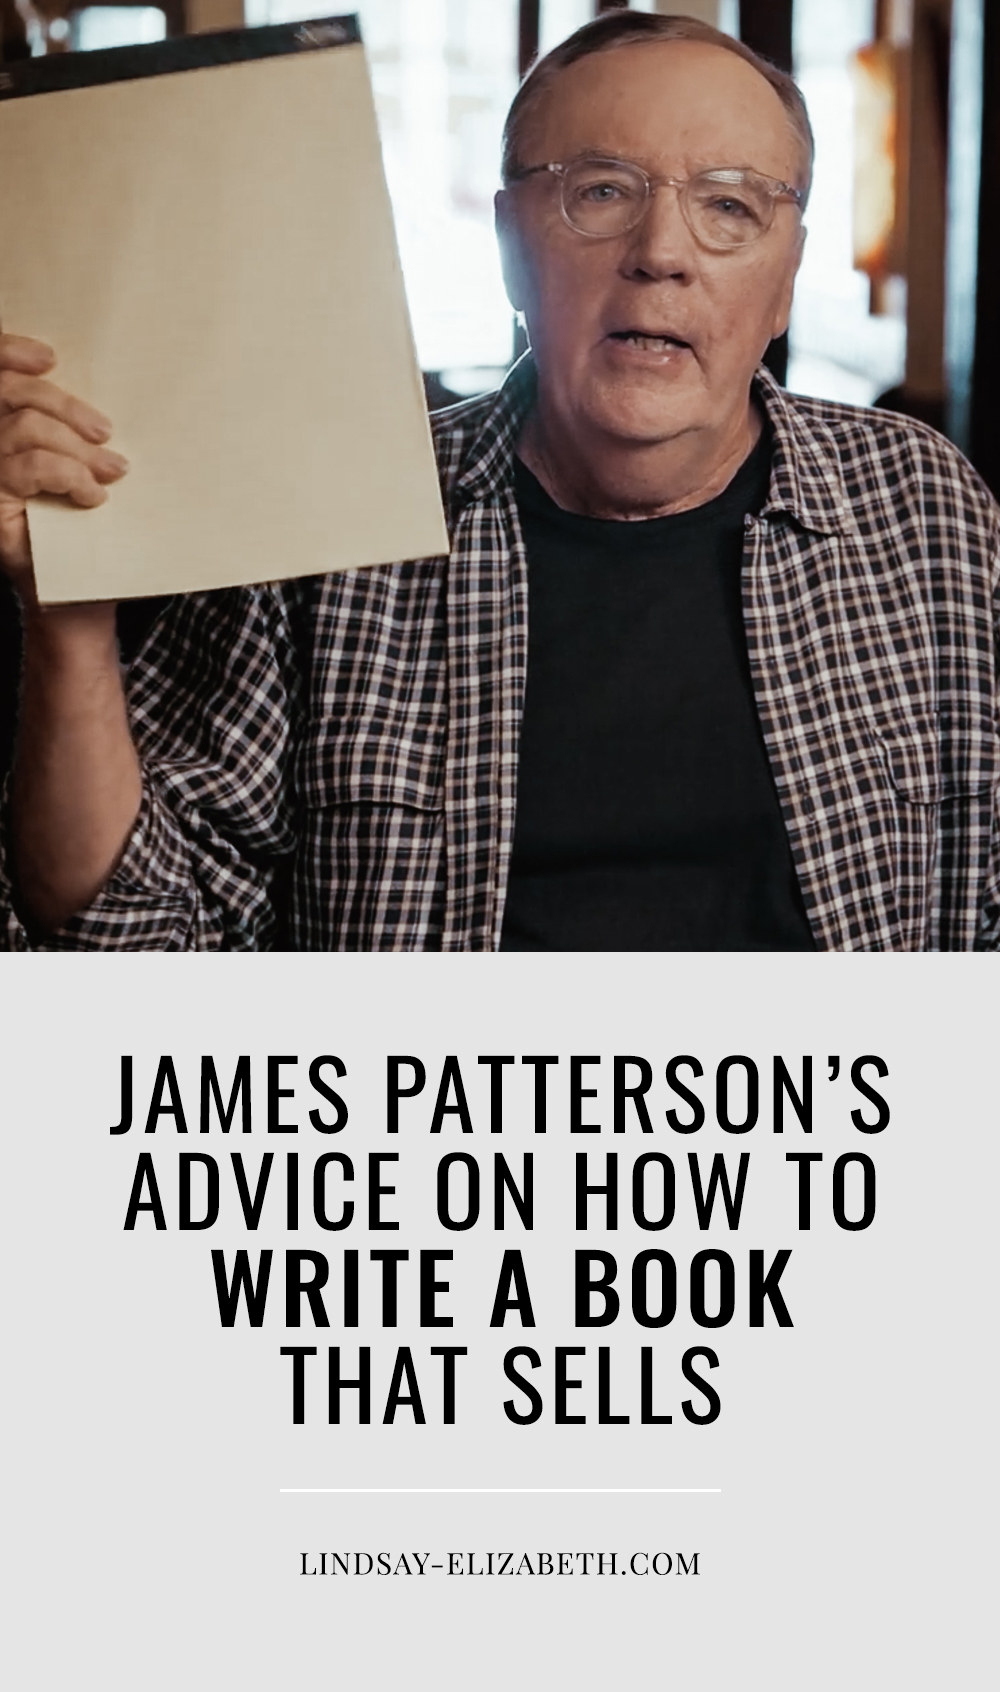 Get insight into how to write a bestseller from the world record holder himself, James Patterson, in his MasterClass on writing. He walks you through his process and shares advice on every step of the journey of writing a book, from coming up with ideas to marketing your book so it will sell. #writers #authors #writingadvice #writingtips